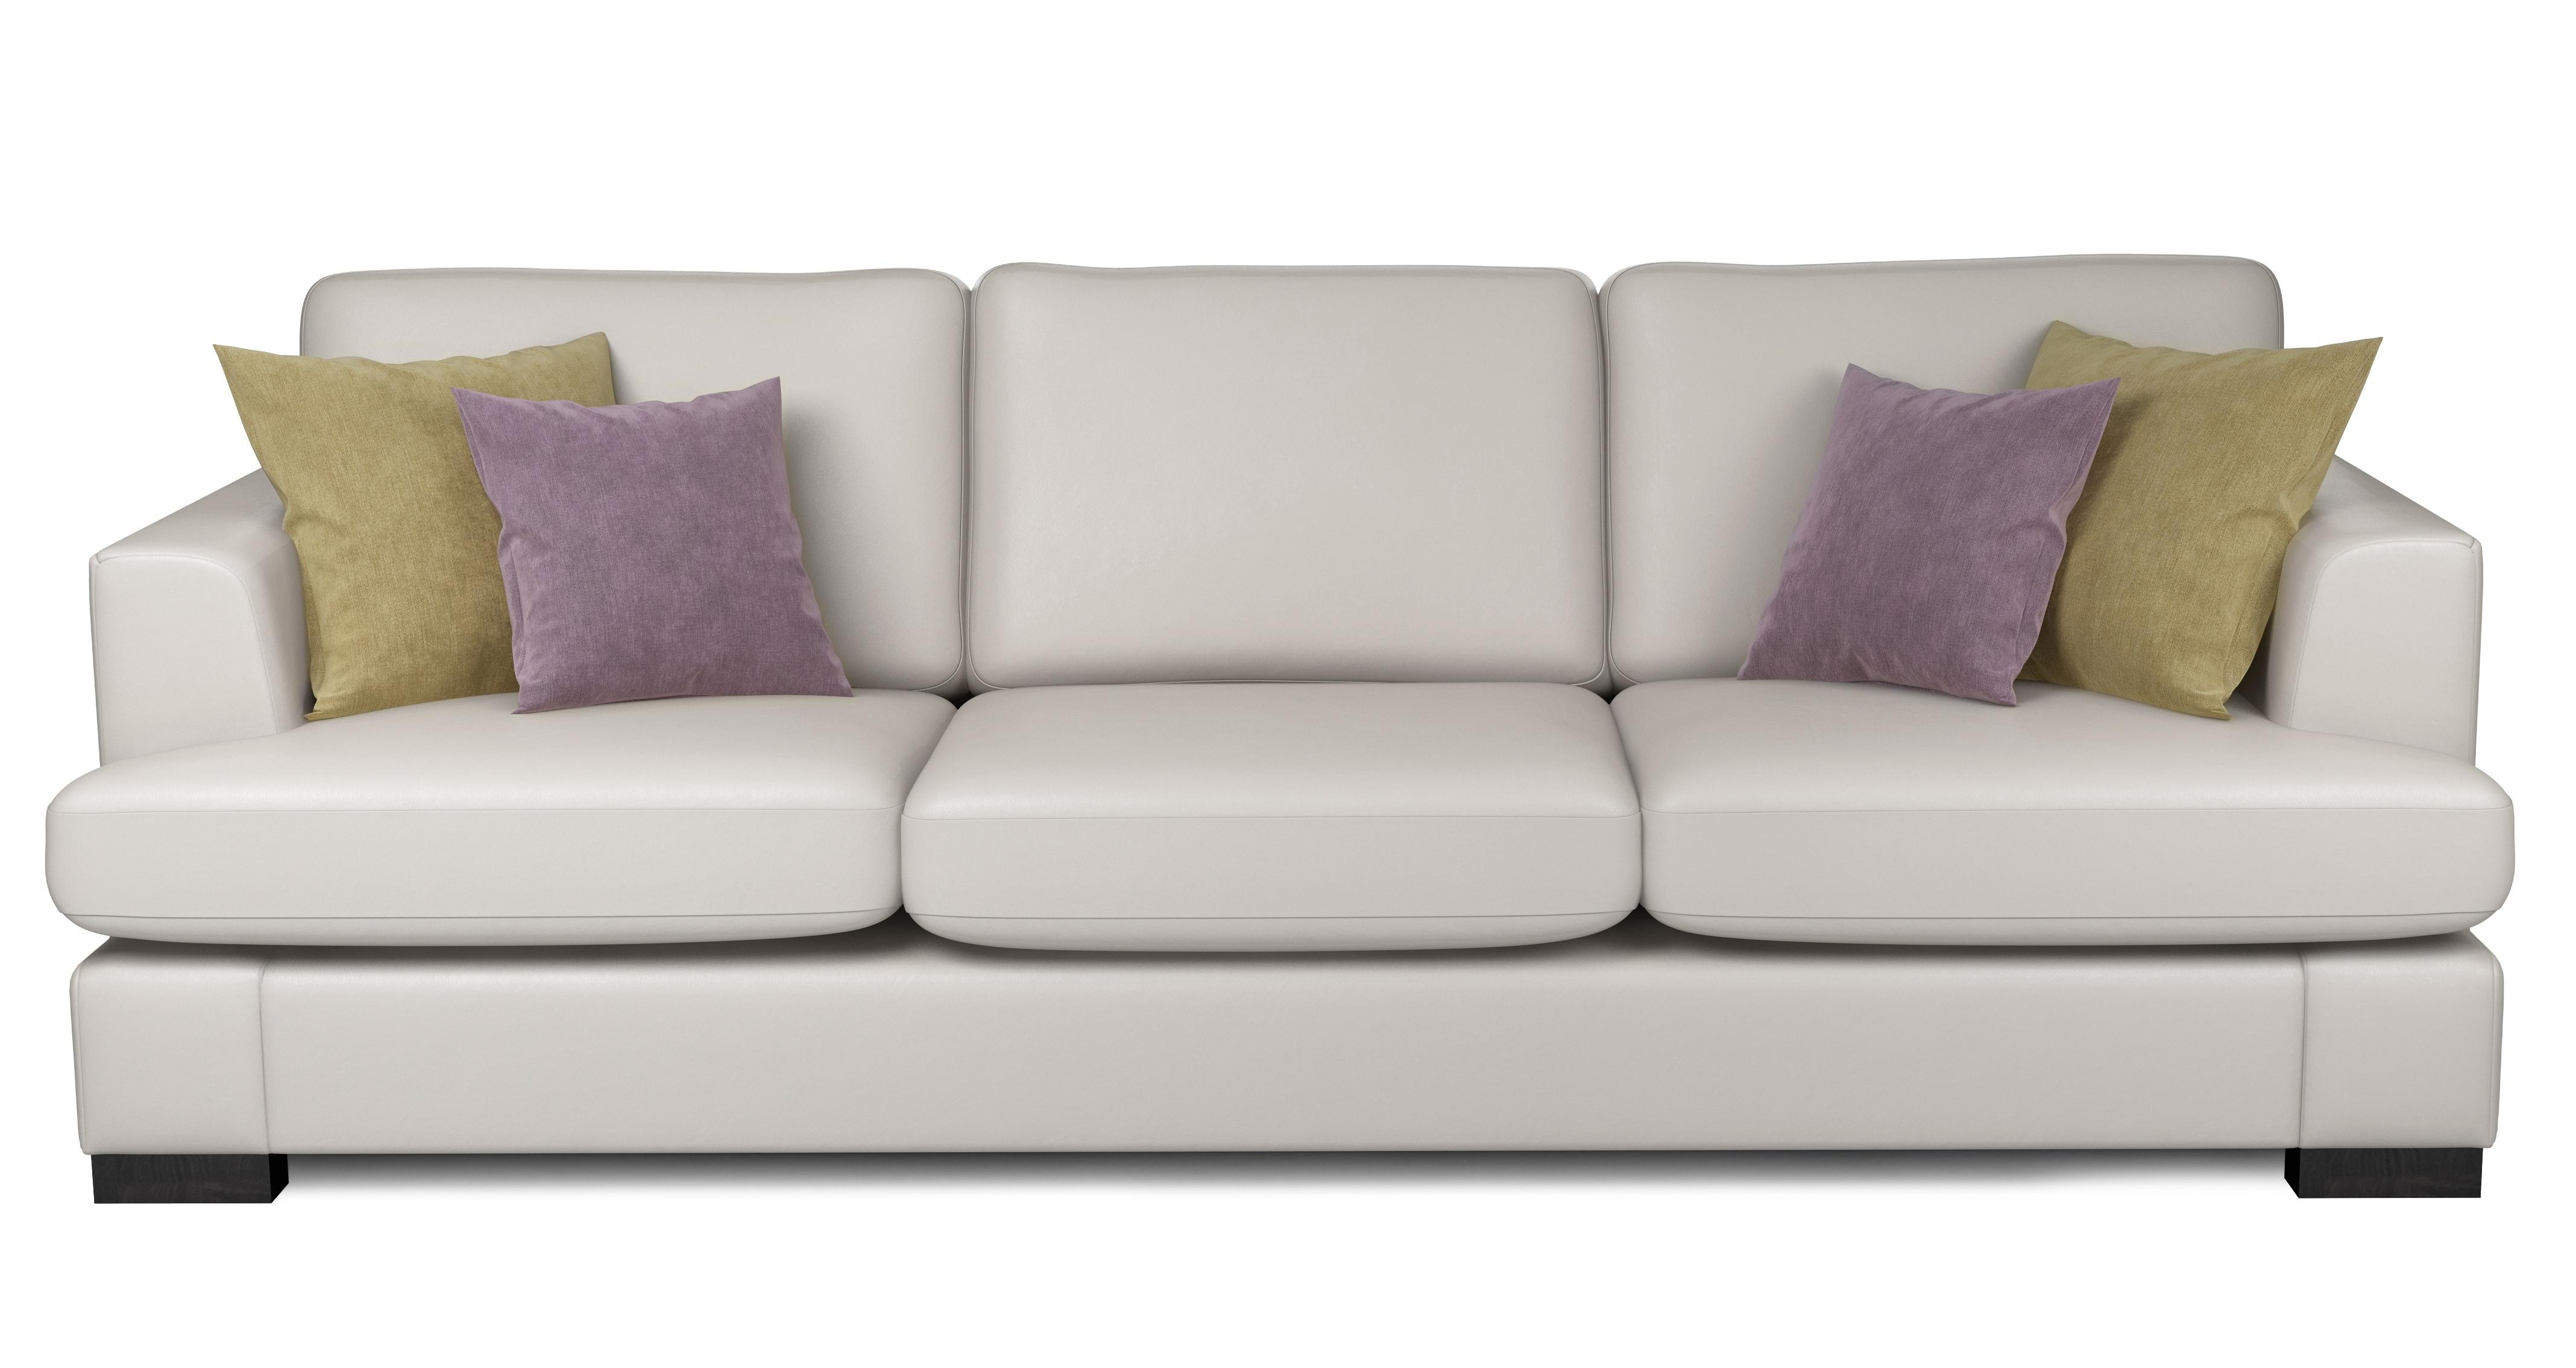 2019 4 Seater Leather Sofa – Home And Textiles Intended For Four Seater Sofas (View 2 of 20)